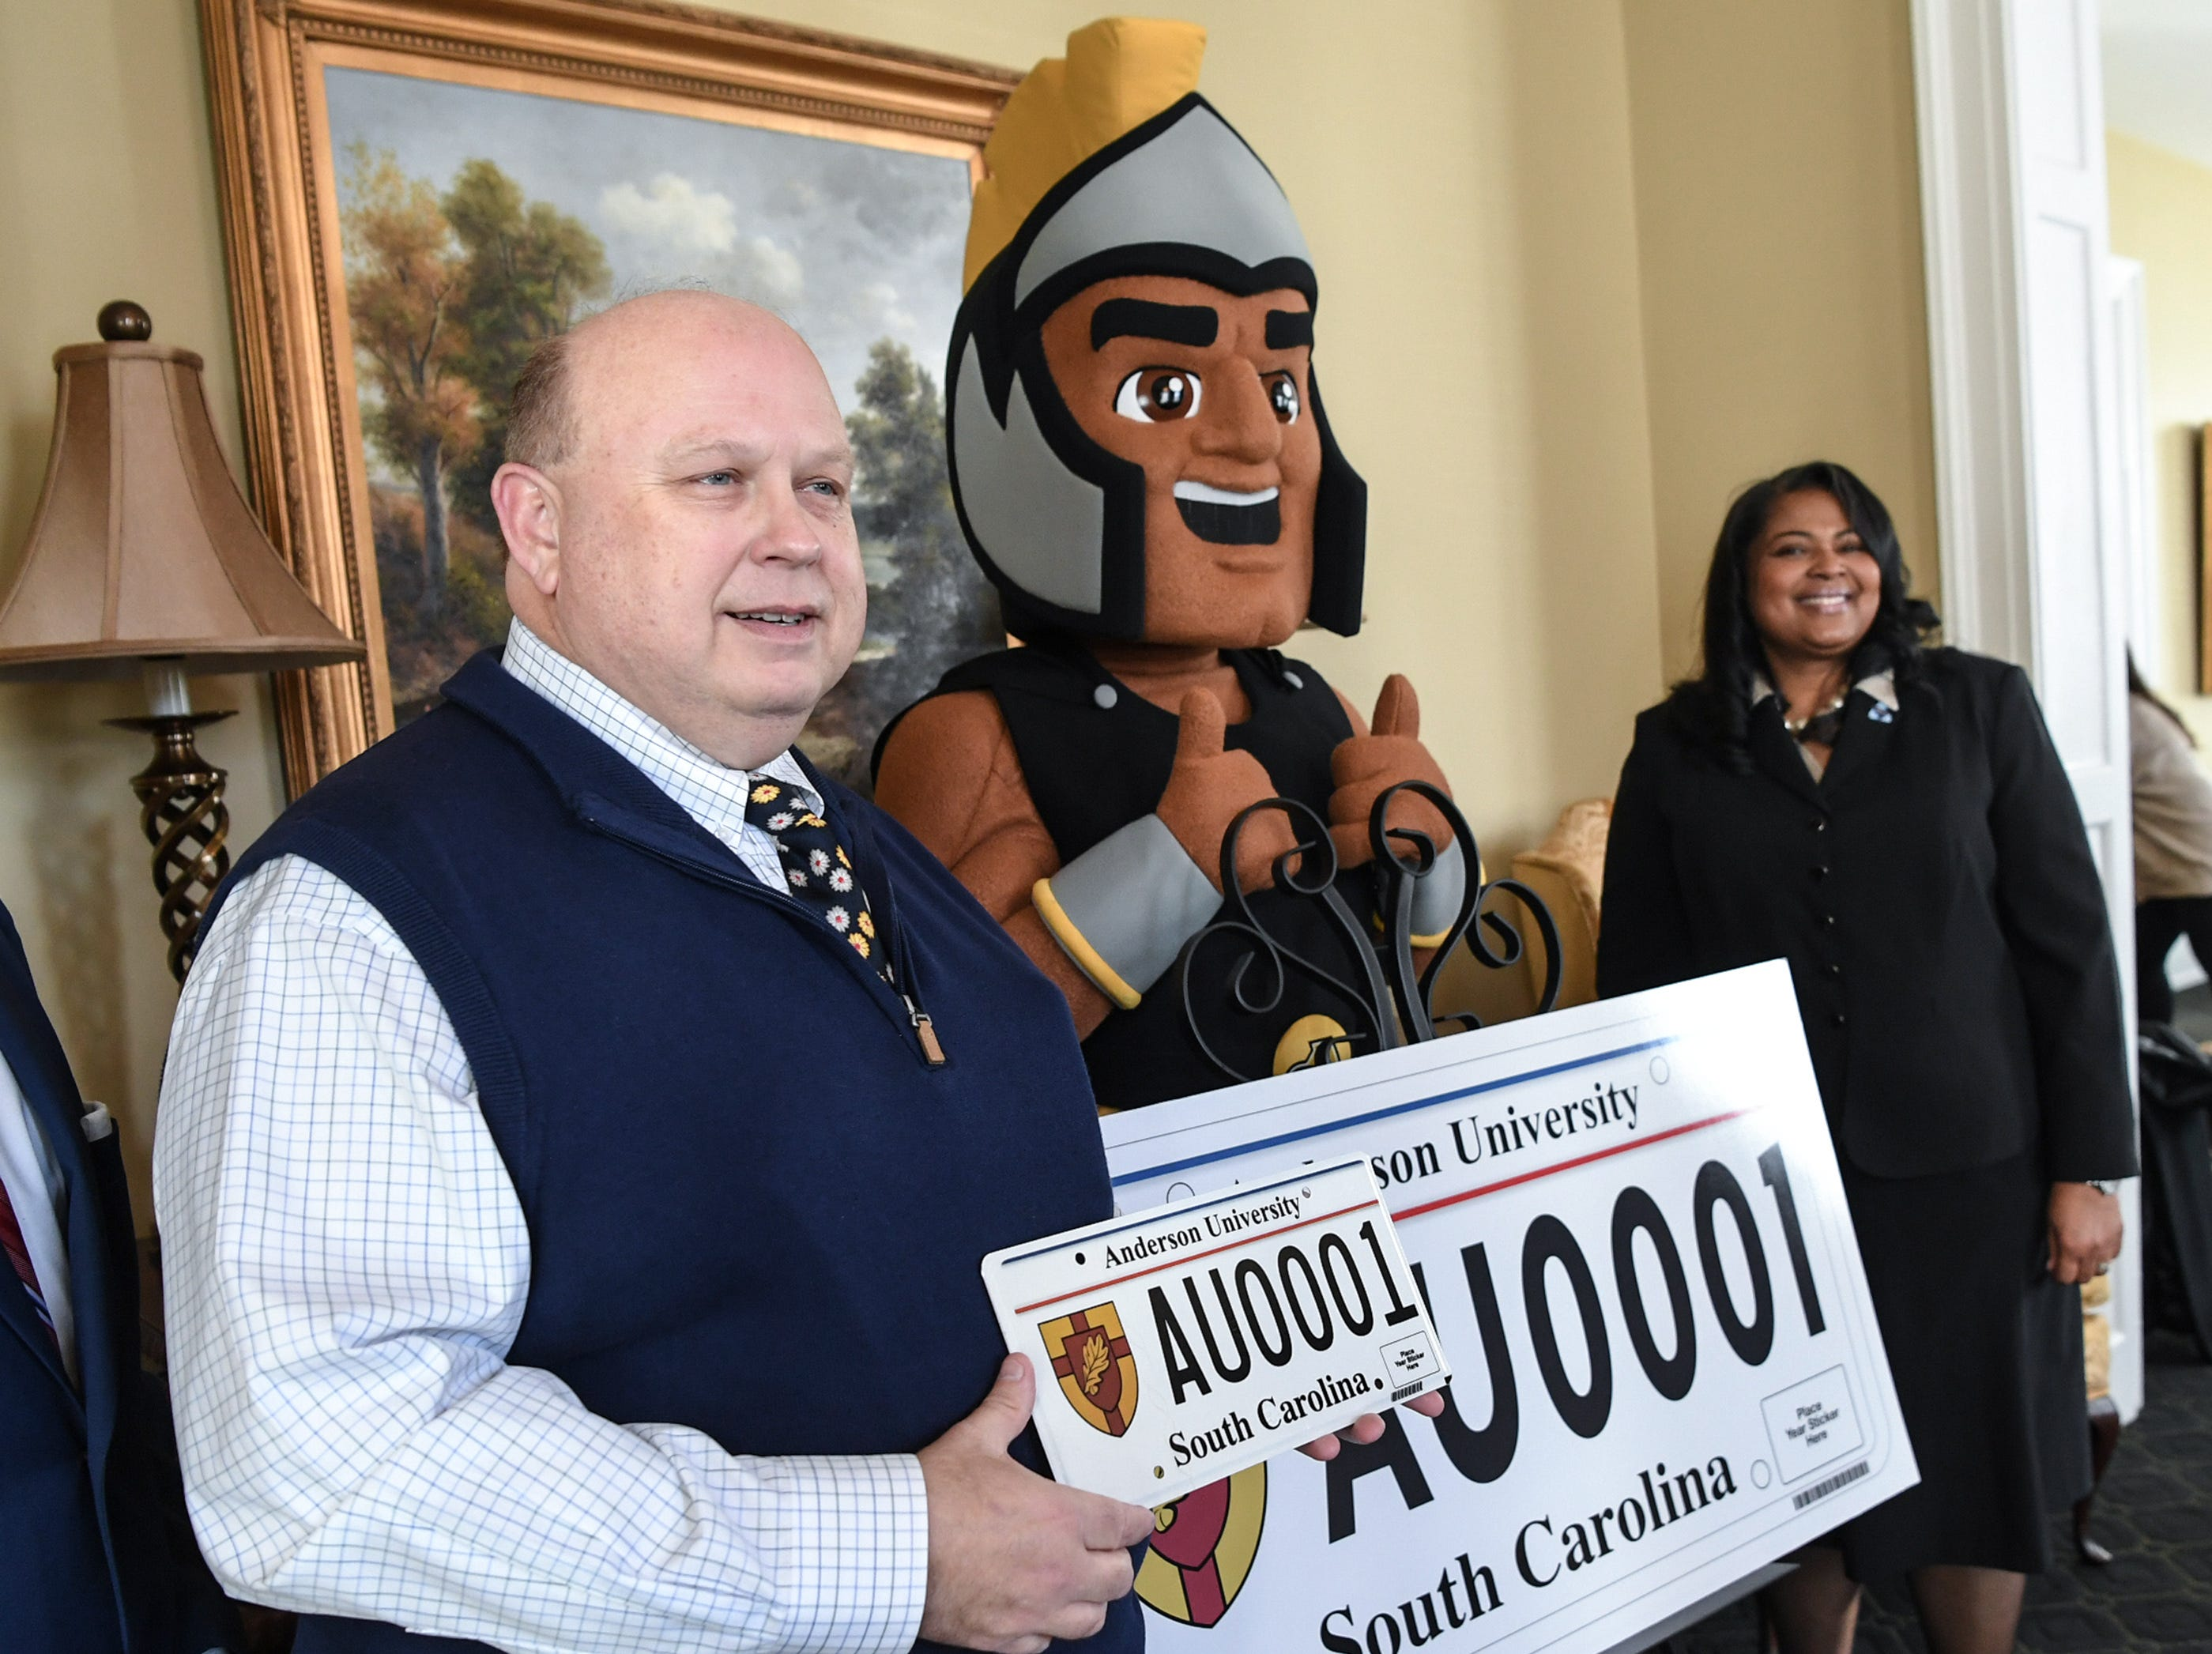 President Evans Whitaker, left, Troy the Trojans mascot, of Anderson University and Hermena Perkins-Brown, right, plate office director of the South Carolina Department of Motor Vehicles, show other officials a new personalized license plate during a press conference at the campus administration building in Anderson Friday morning. The University plate, along with Clemson University and the University of South Carolina, are the only college or university plates available to personalize, said Perkins-Brown. The Anderson University plates can be applied for starting Monday, January 28, 2019 in person, not online, for $100 and an added fee if personalizing.